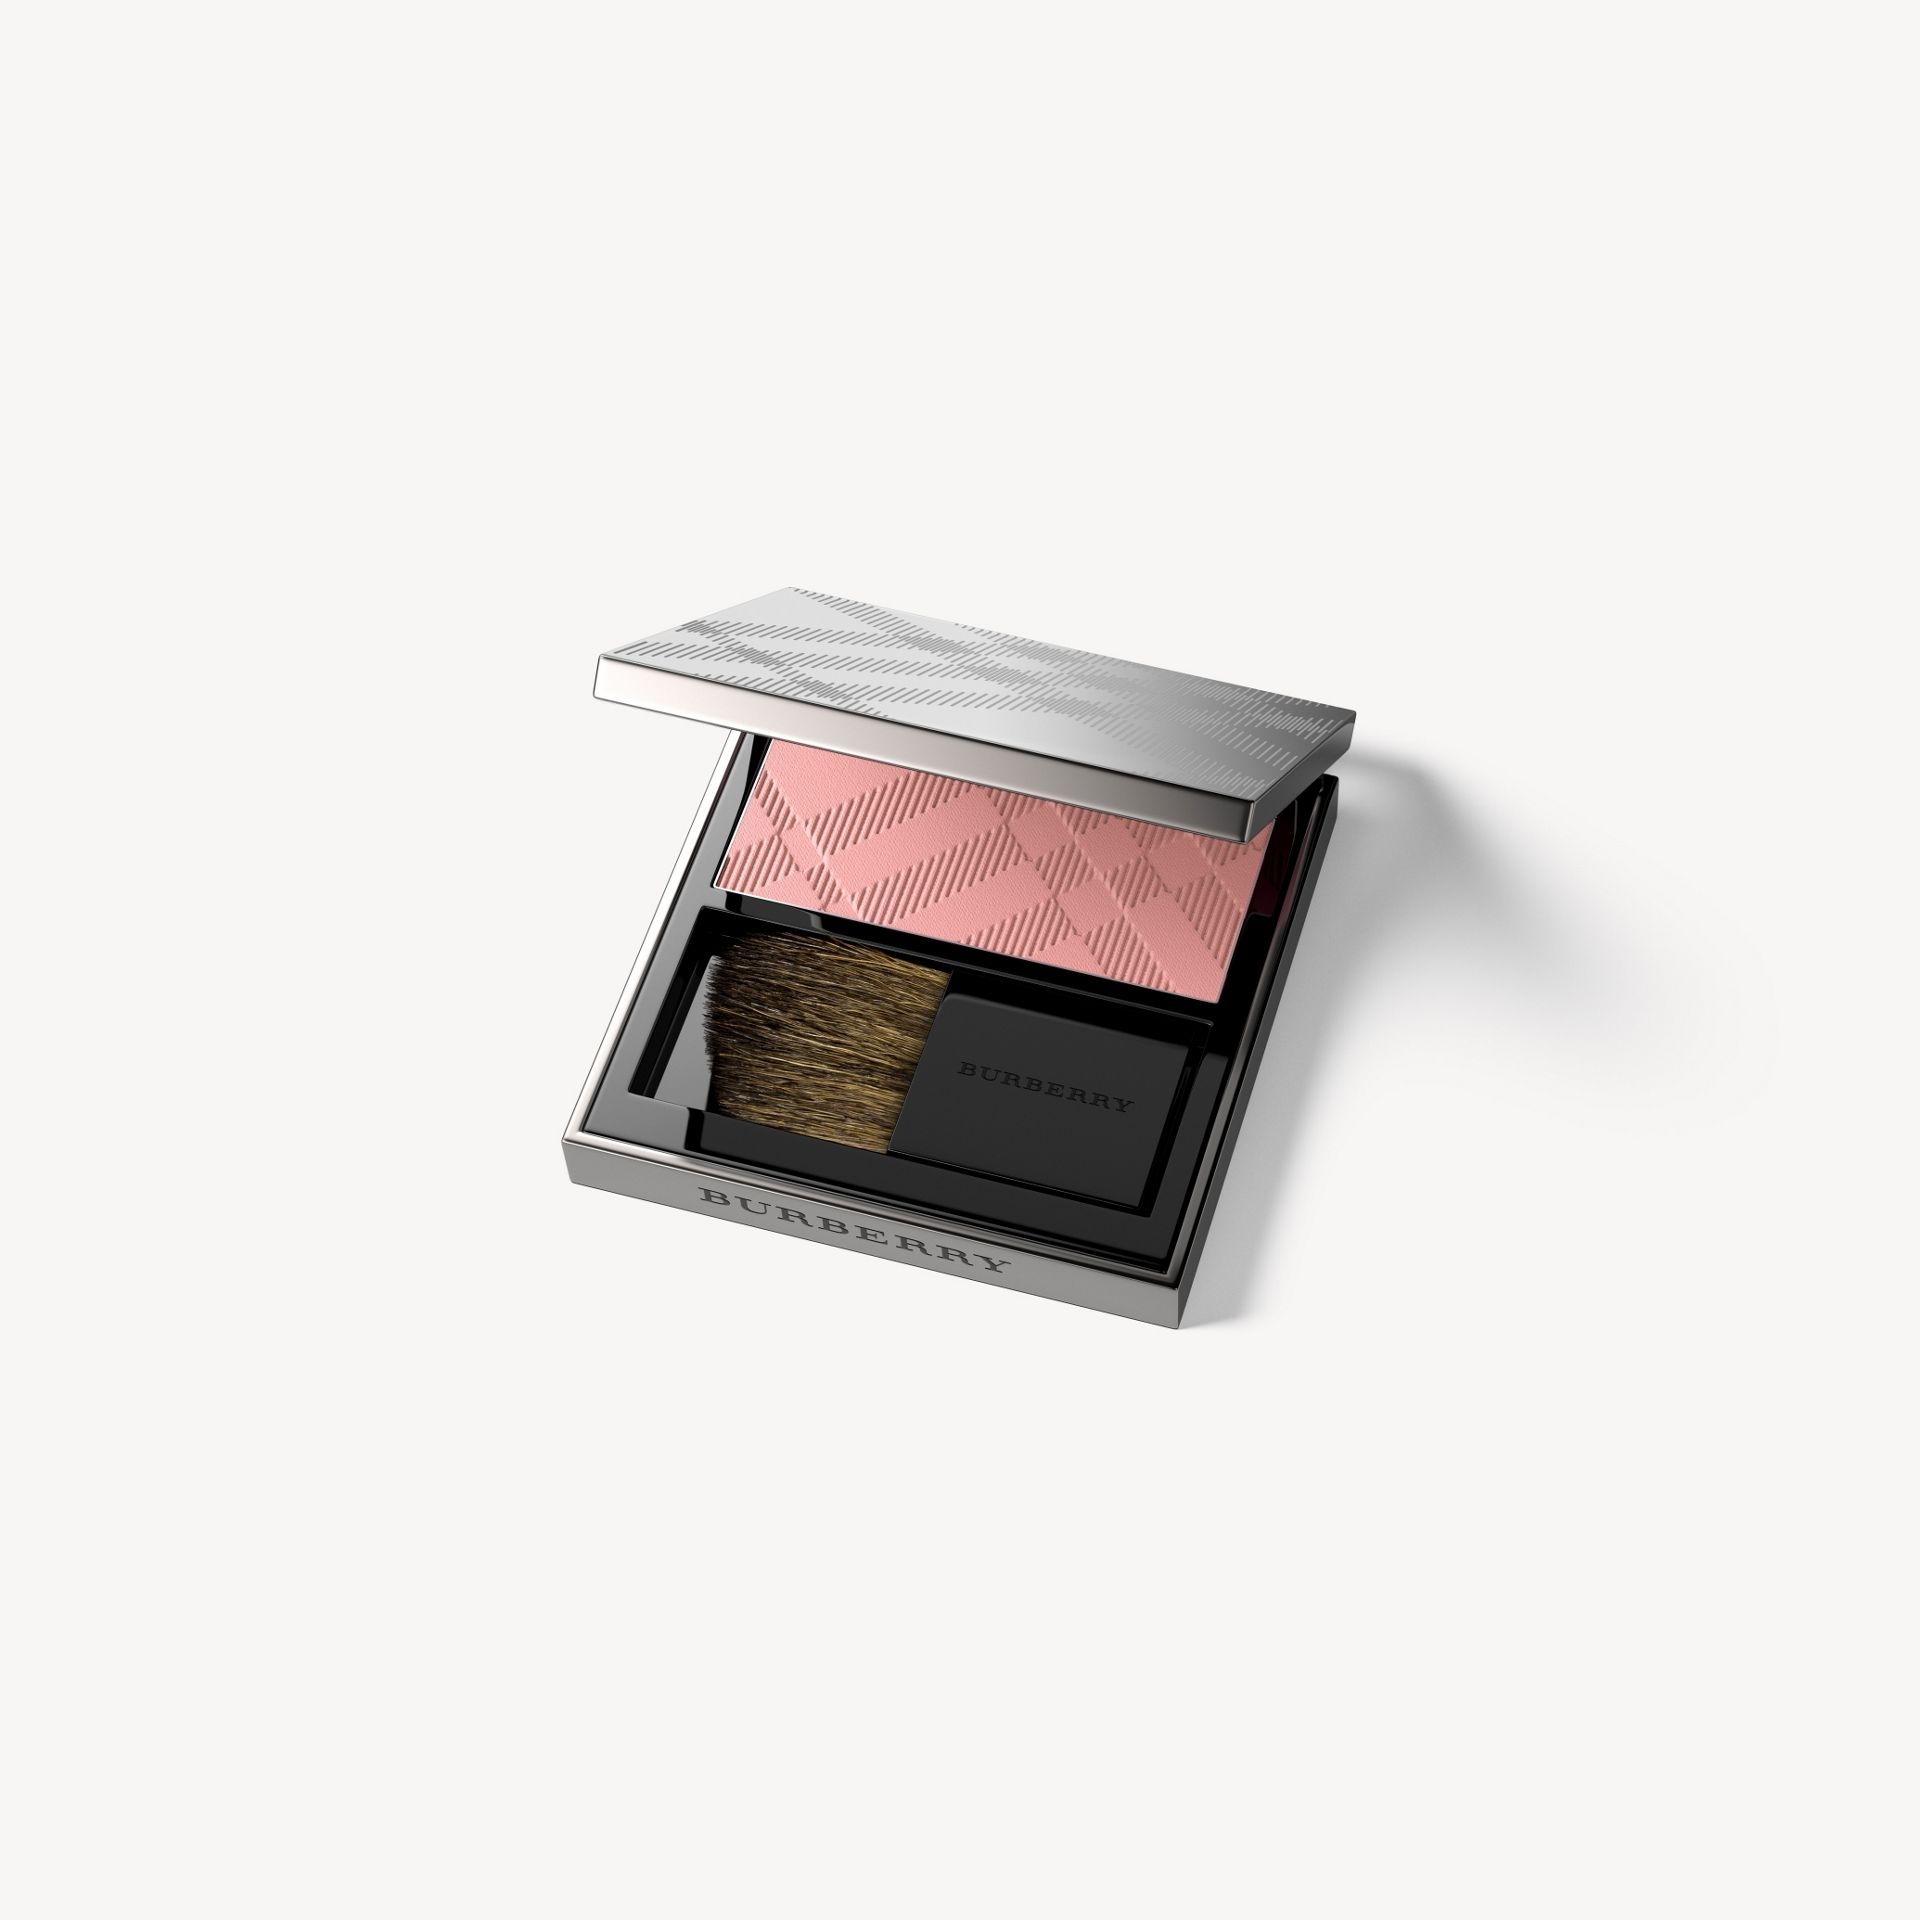 Румяна Light Glow, Misty Blush № 08 (№ 08) - Для женщин | Burberry - изображение 0